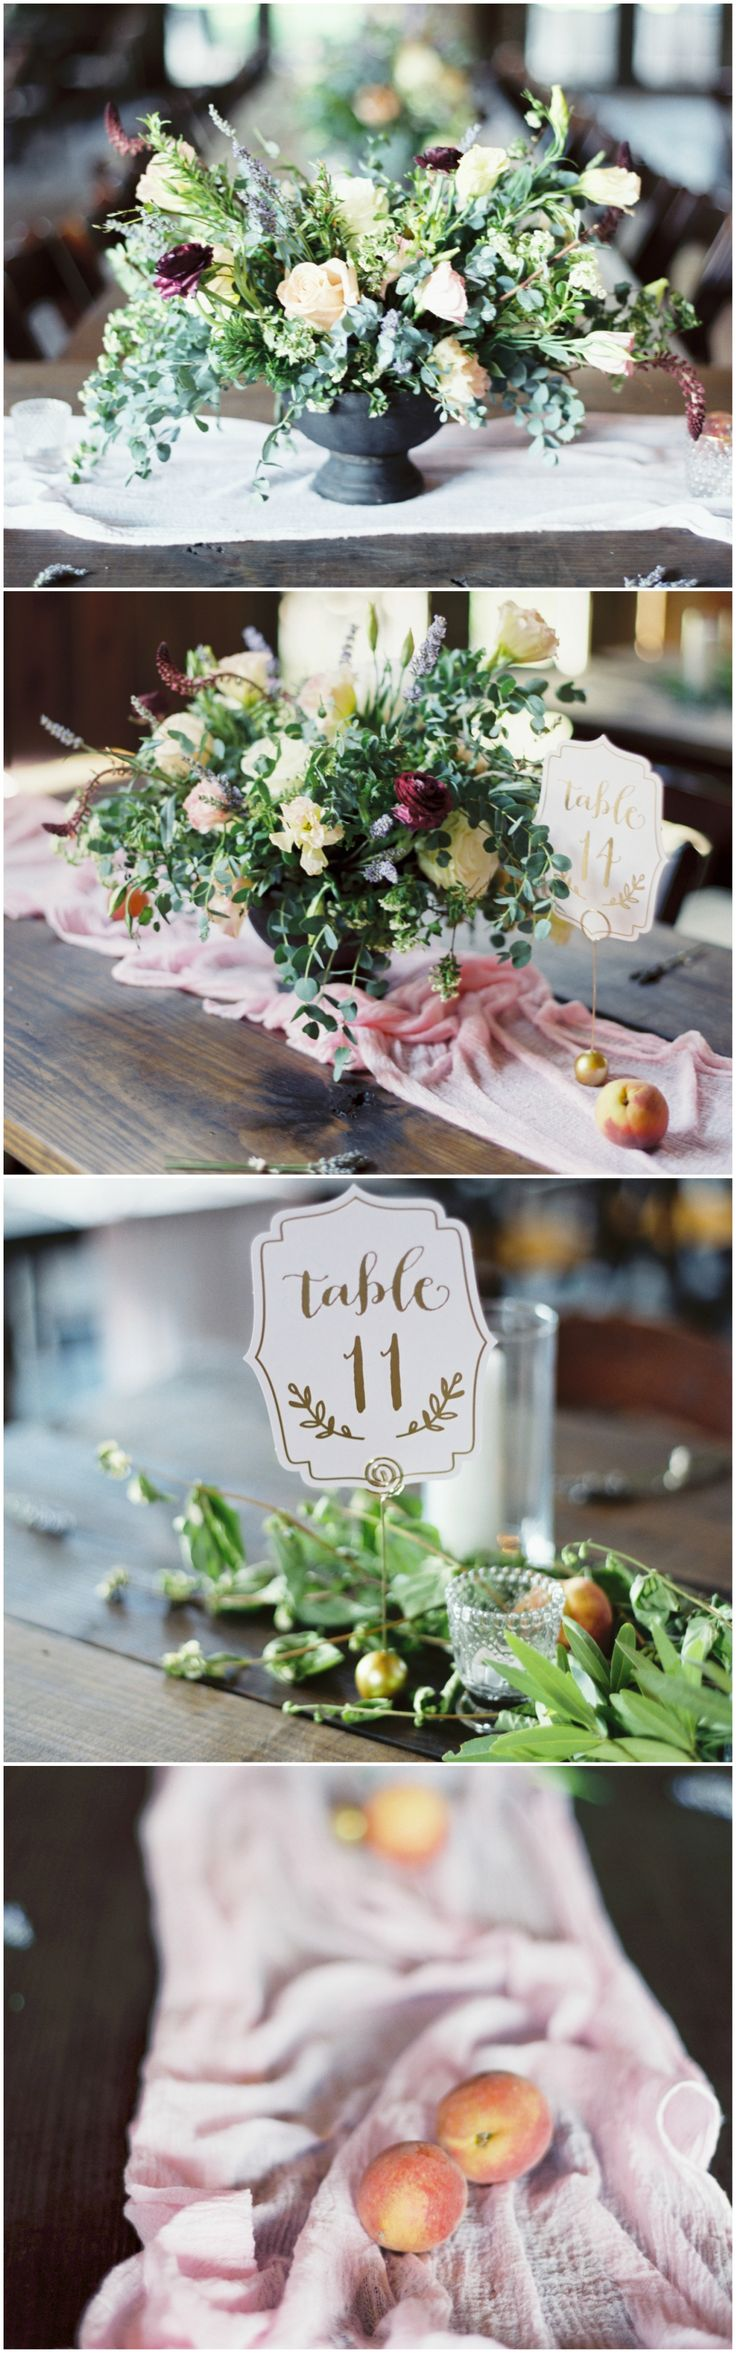 Table spring wedding tablescapes - Pastel Spring Wedding At Vista West Ranch Dripping Springs Tx Floral Centerpiecesfarm Tablesranunculuswedding